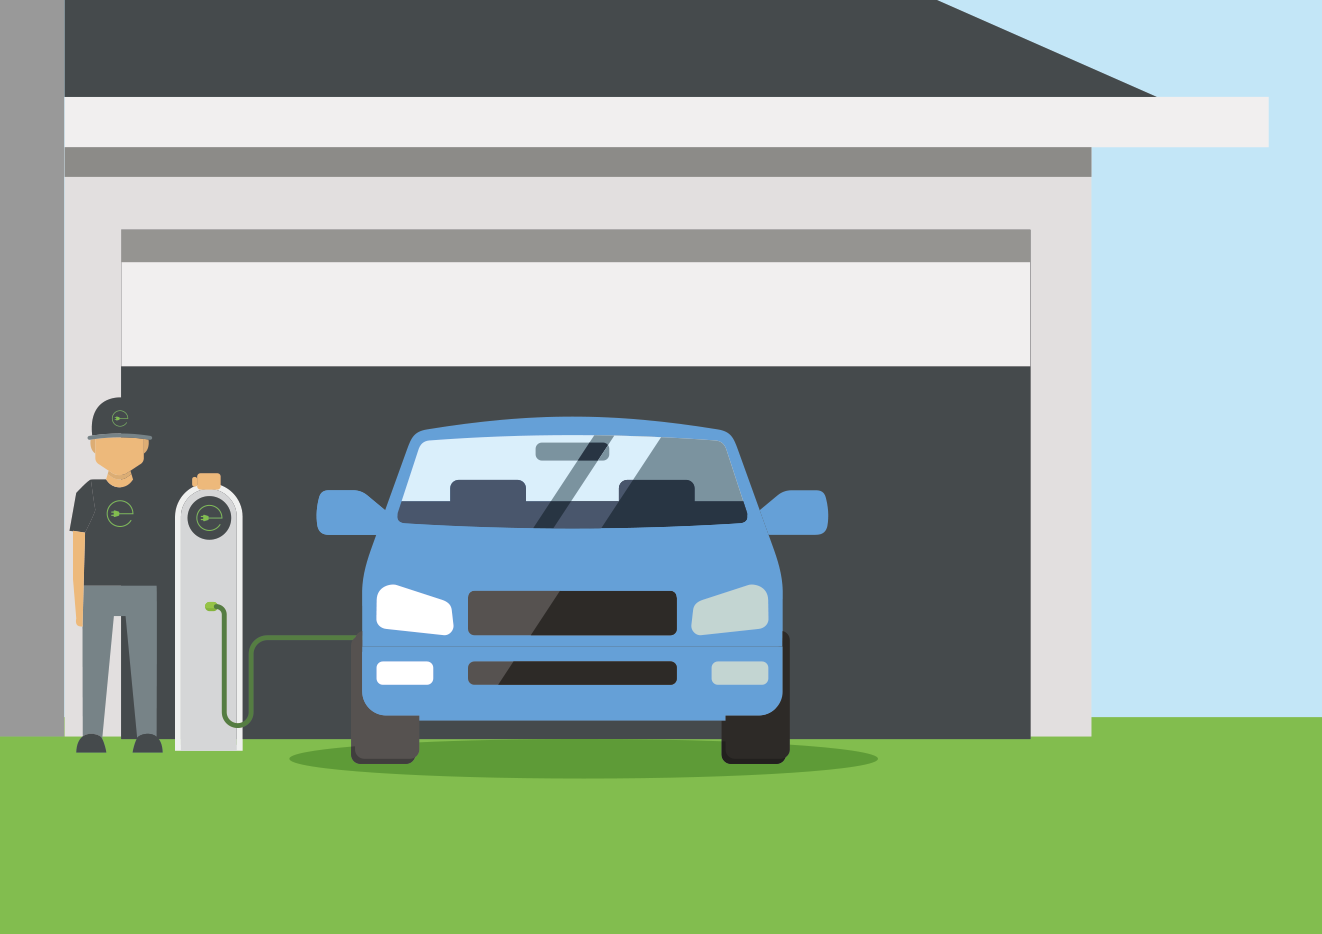 EV chargepoint installers for home